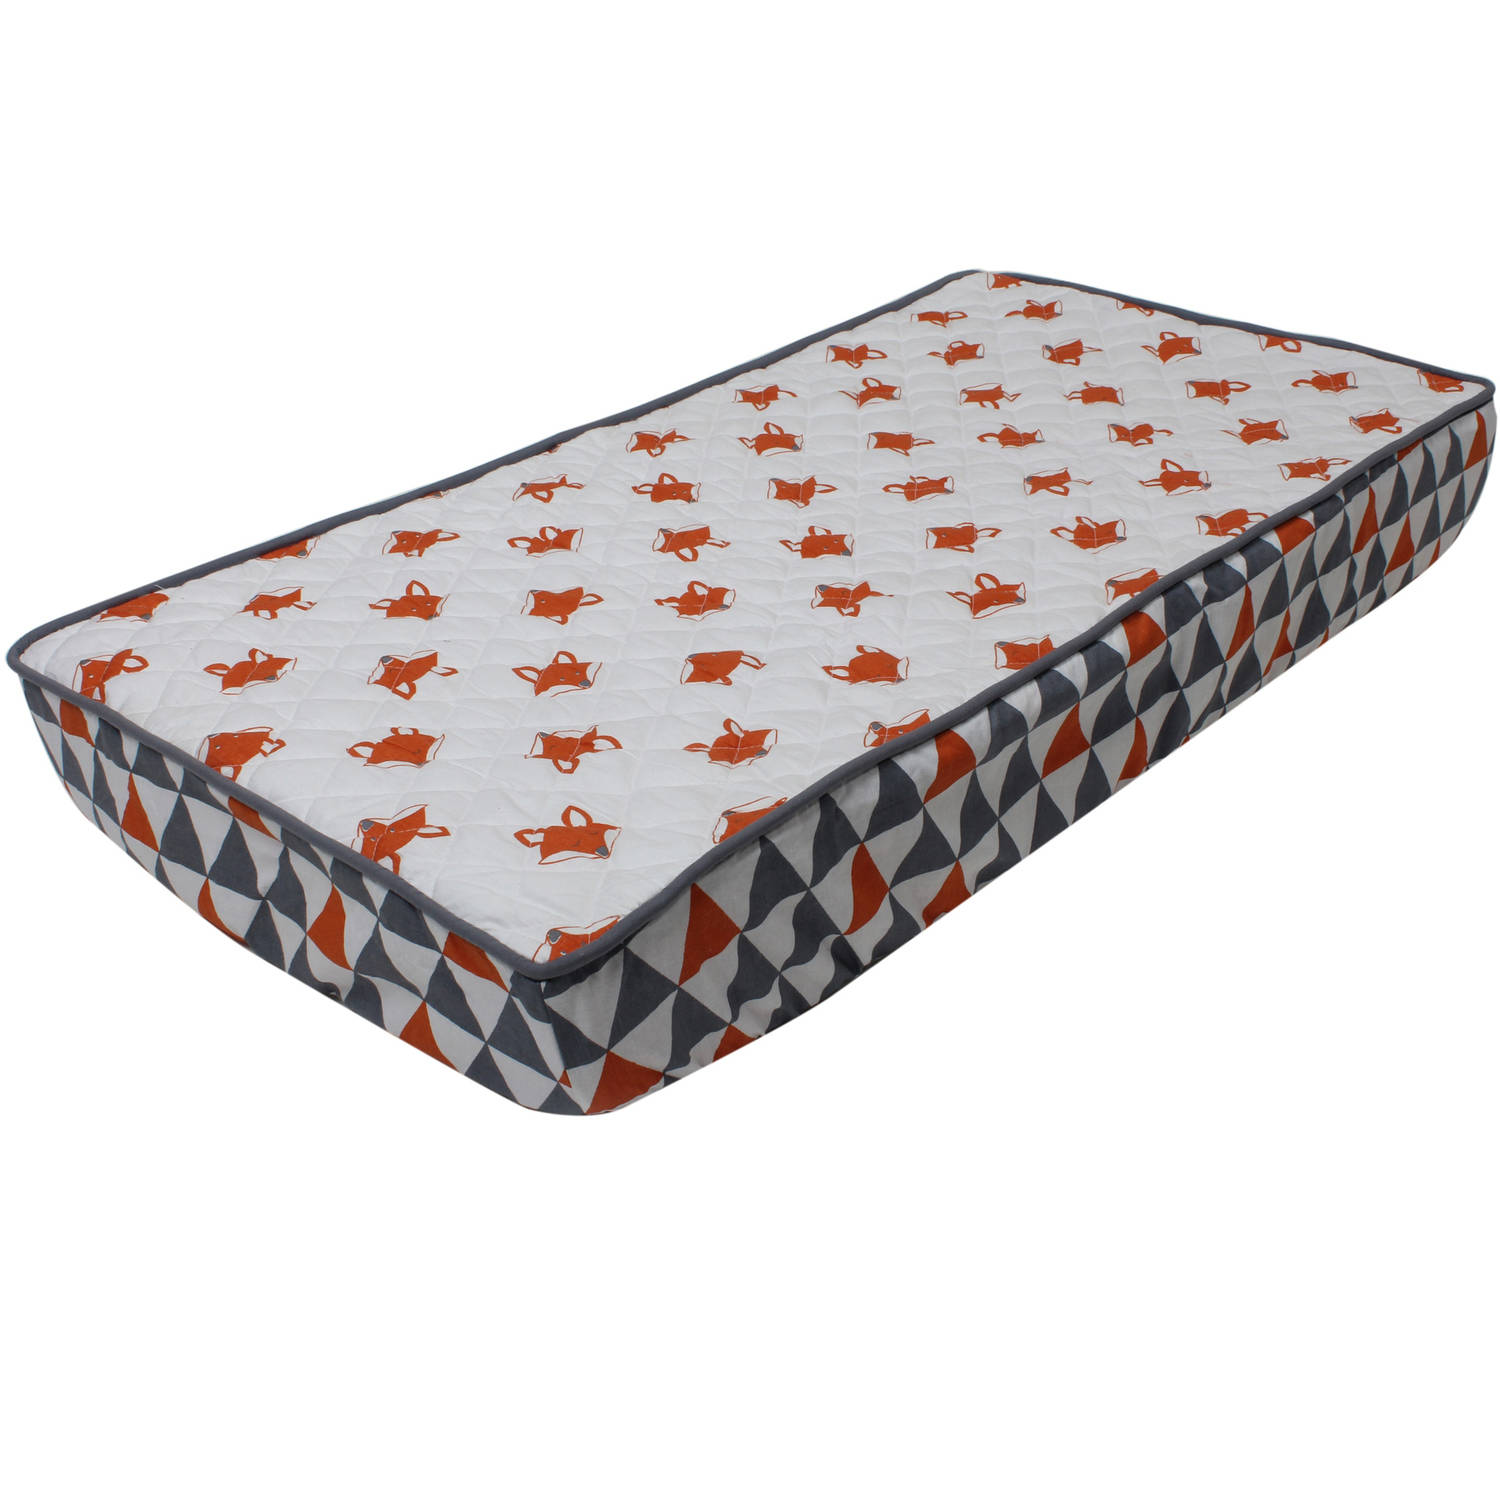 Bacati Playful Fox Printed Quilted Top 100% Cotton Percale with Polyester Batting With Triangles Gussett... by Bacati